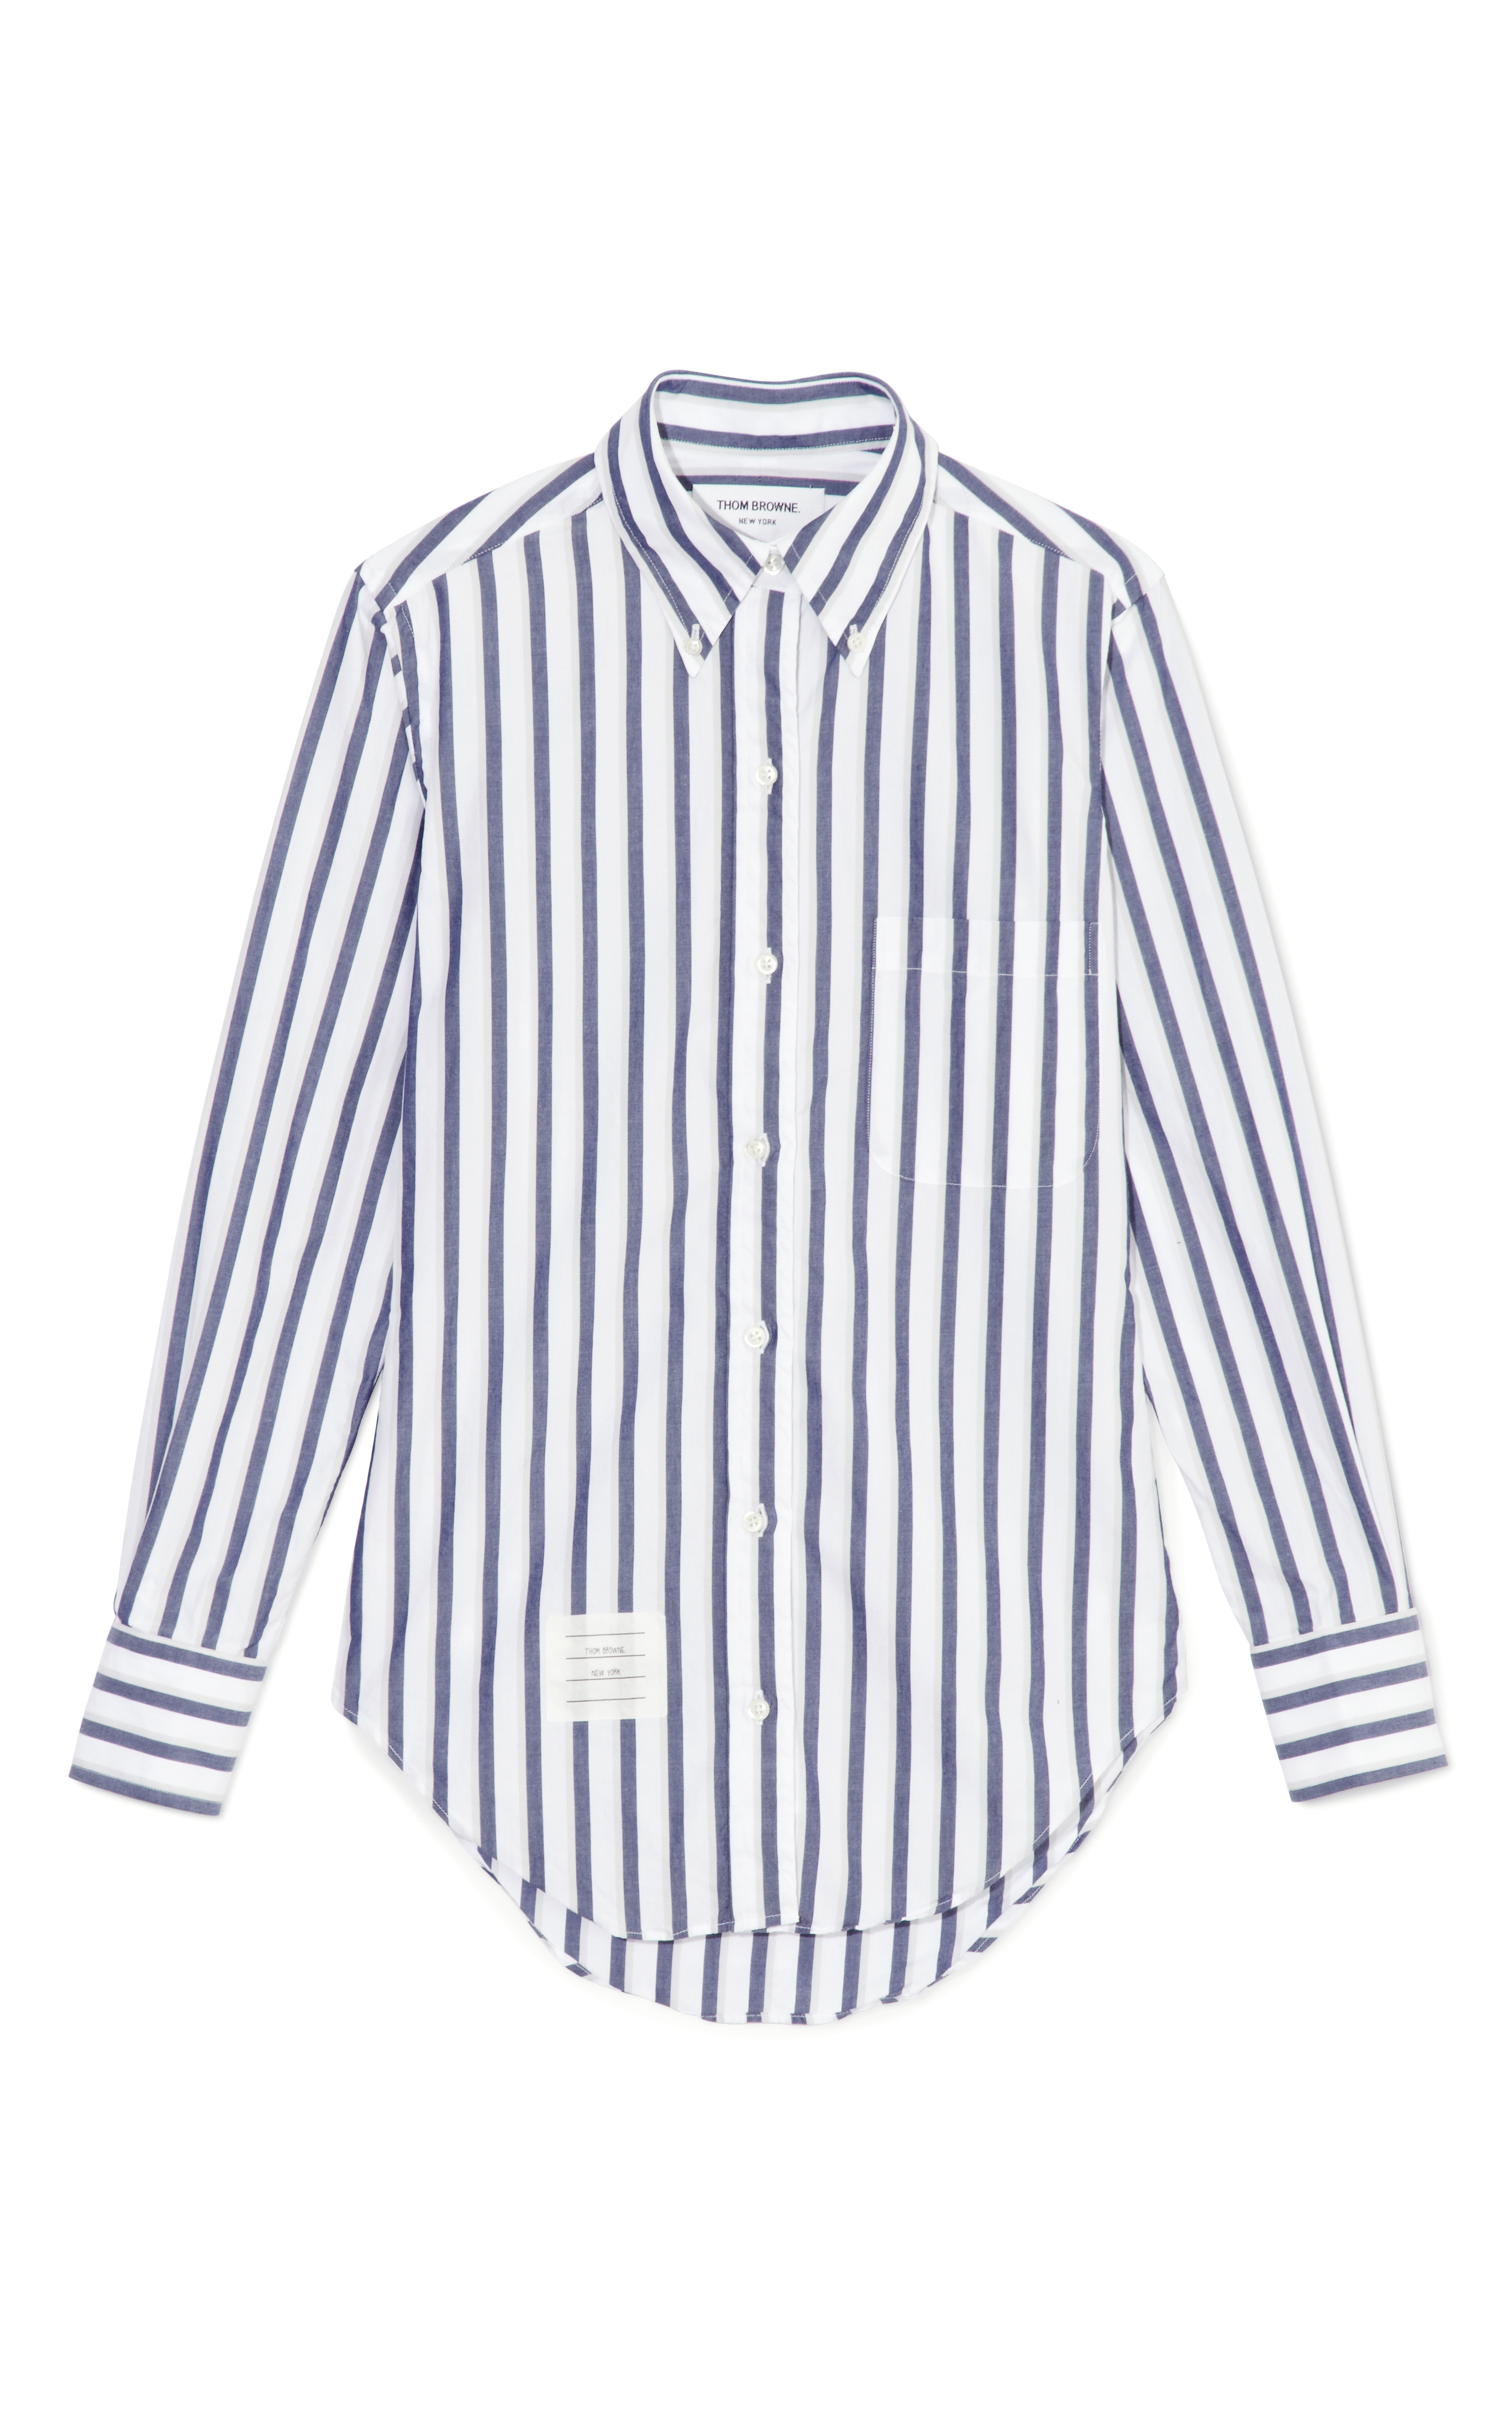 Lyst thom browne classic shirt in thick stripe poplin in for Thom browne white shirt